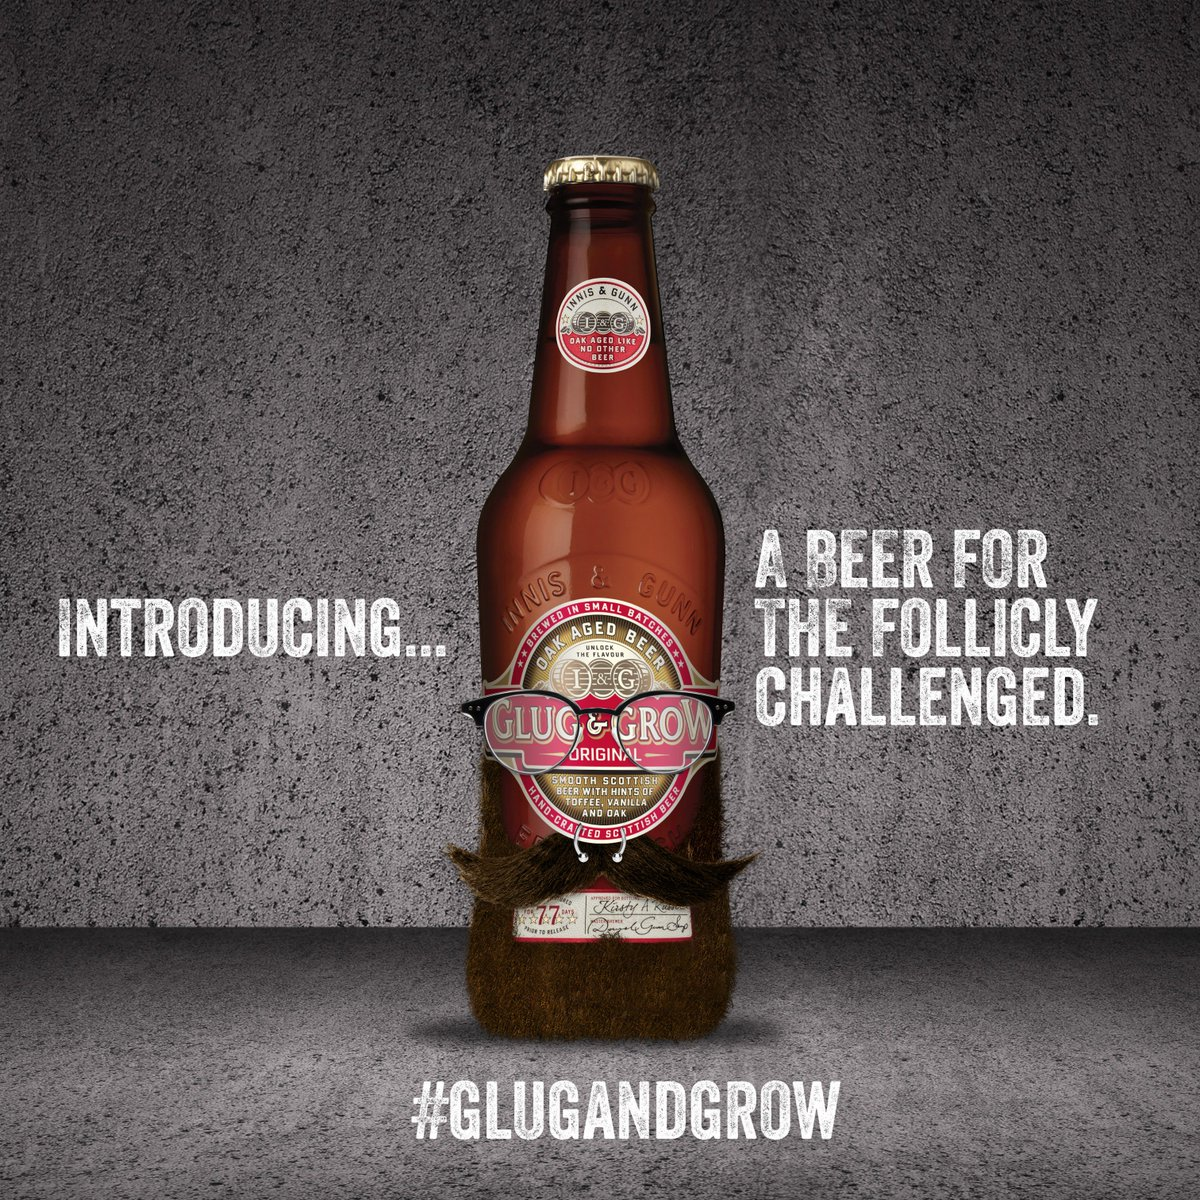 Struggle to fit in the #craftbeer scene? Our new #GlugAndGrow takes you from 0 to #hipster: https://t.co/9pawsQUh0g https://t.co/zKscxuJg8N